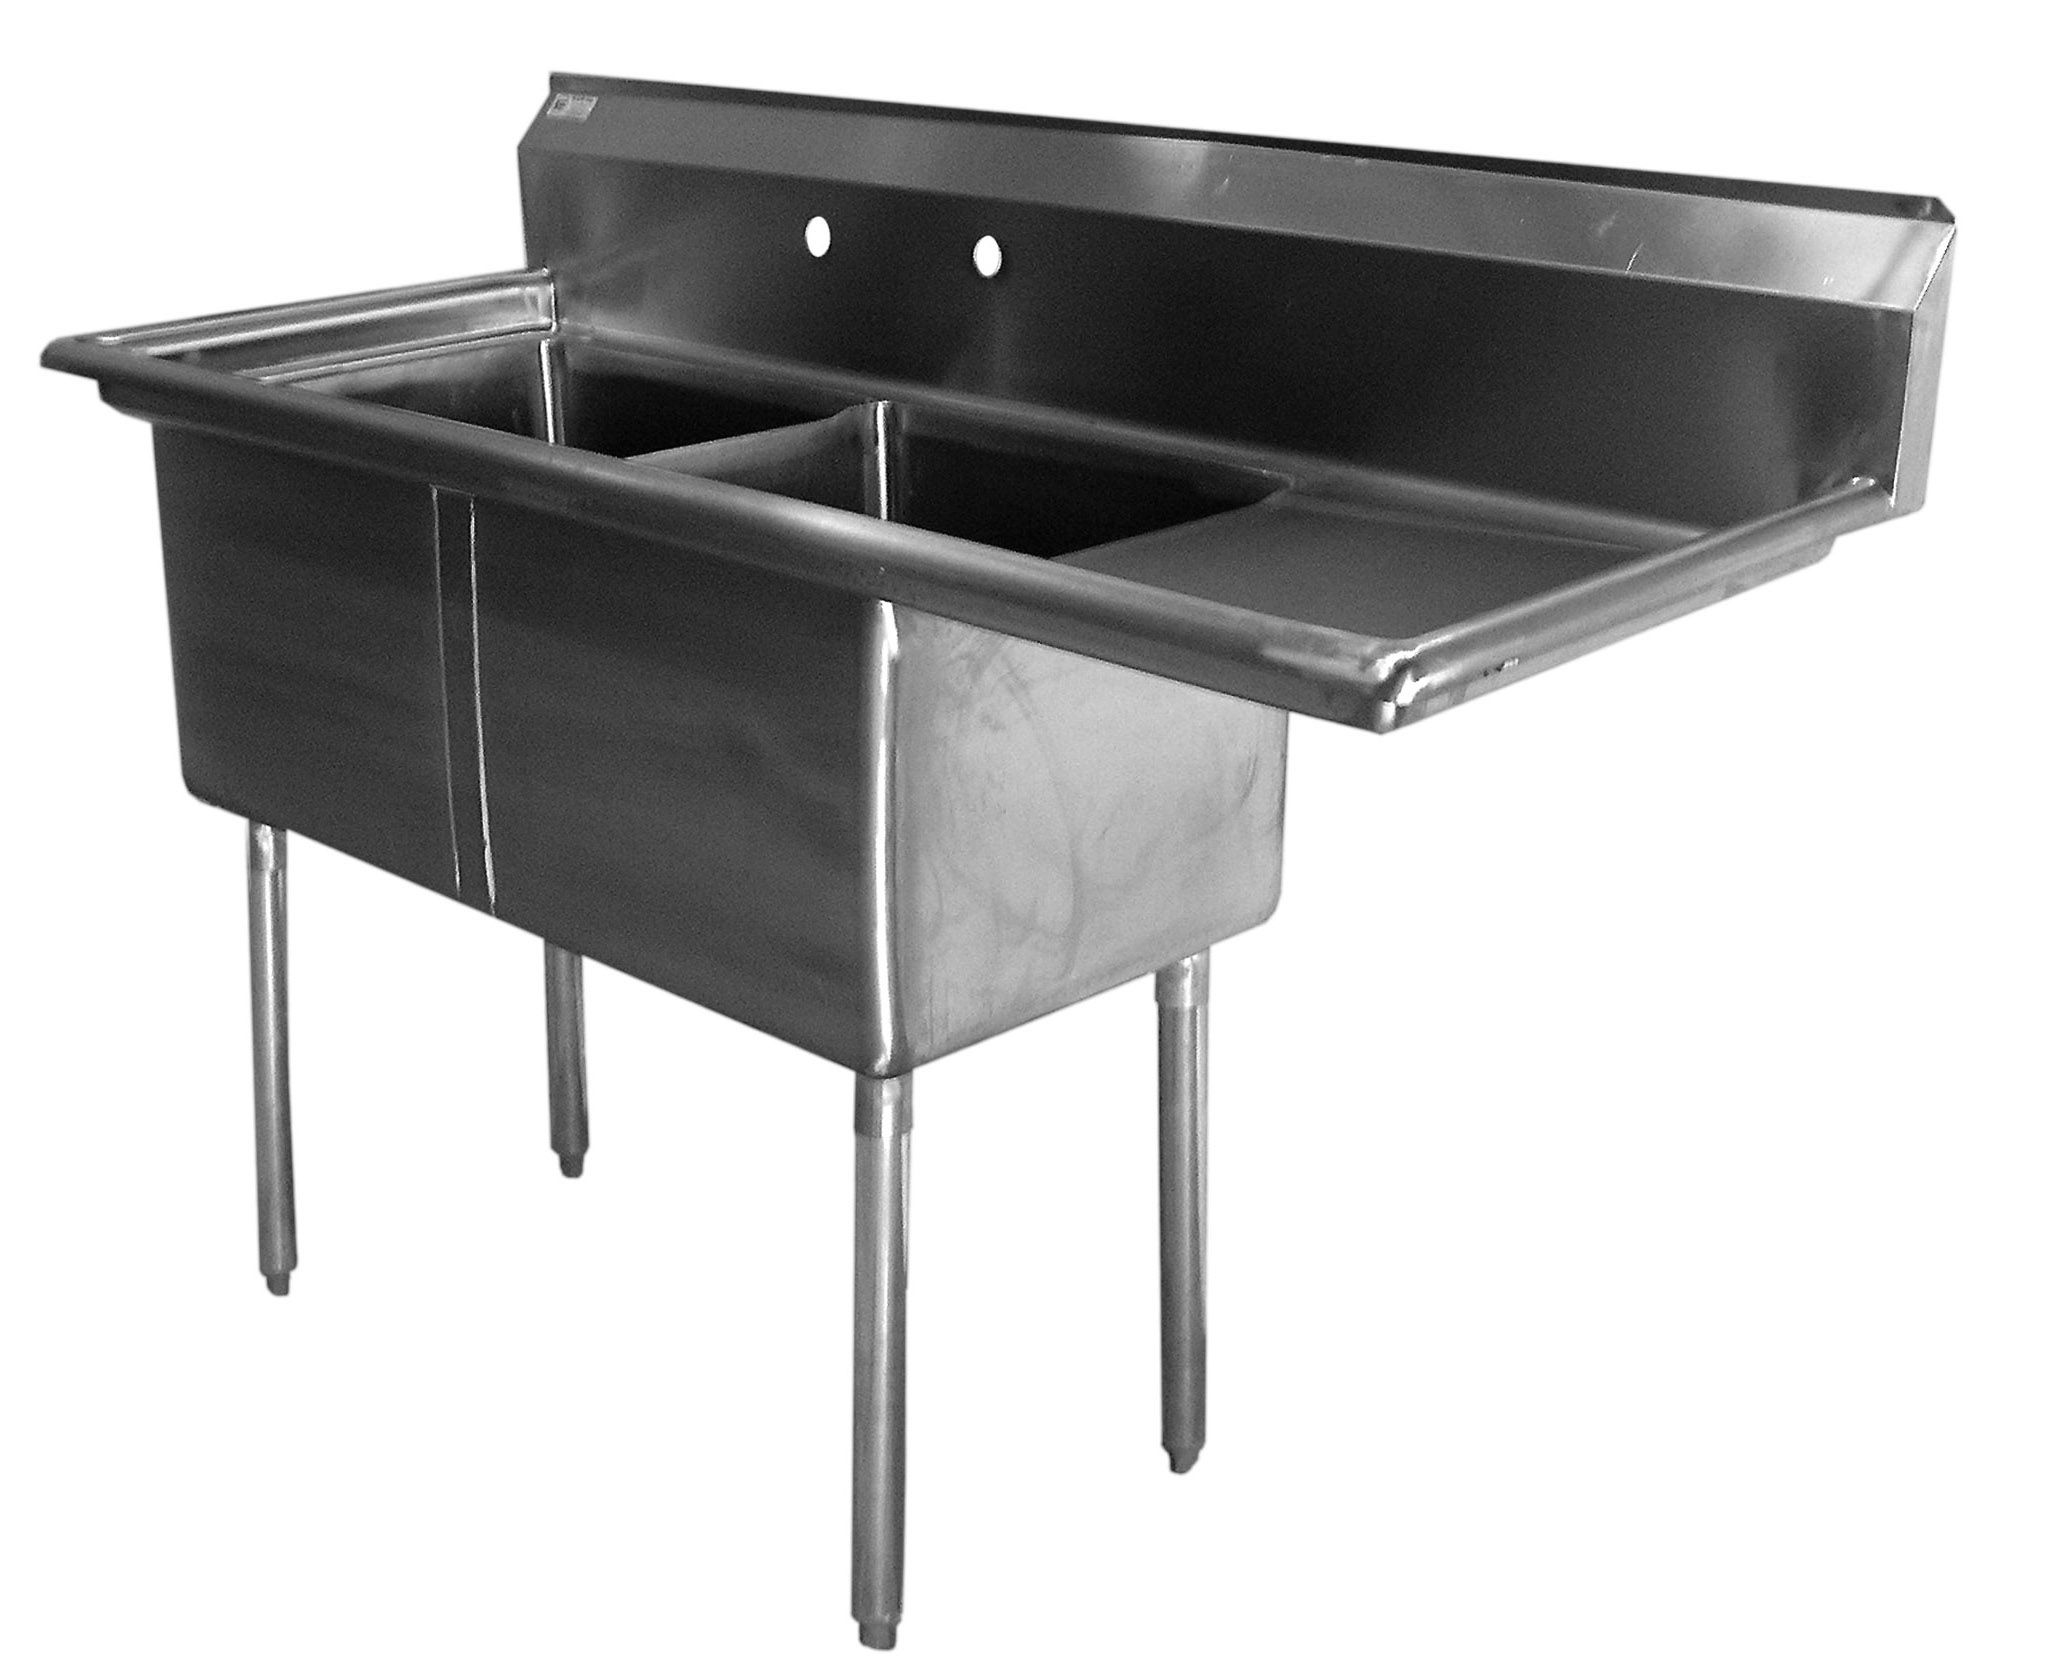 Quality Commercial Kitchen Equipment Economy Stainless